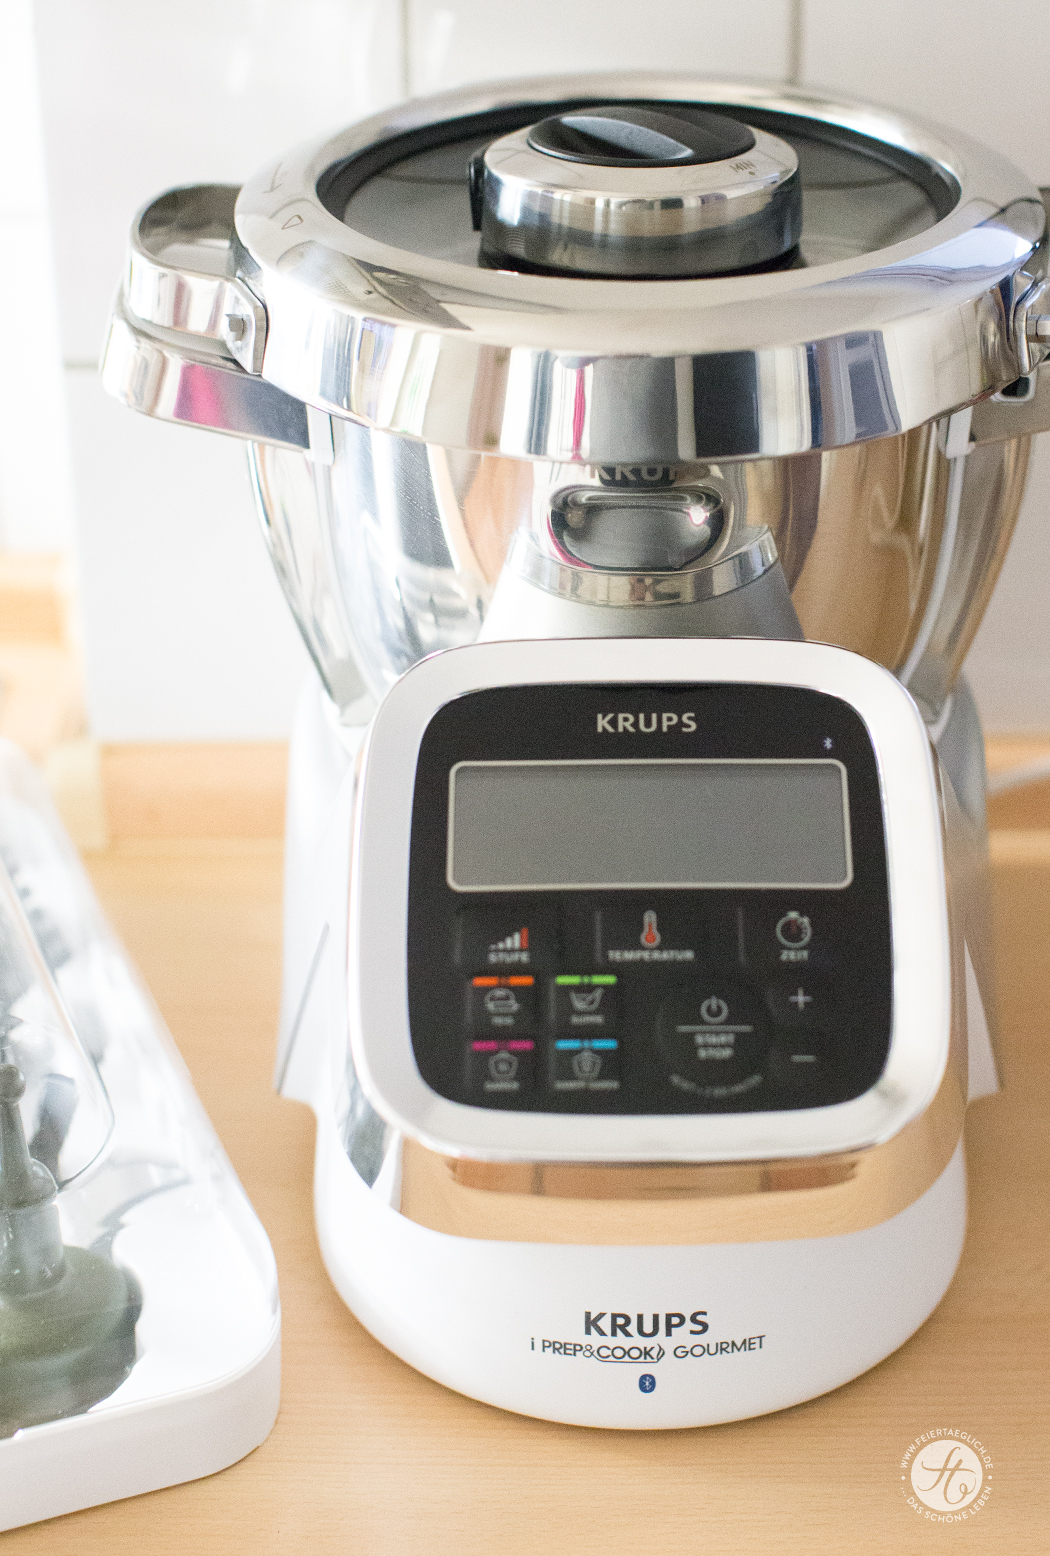 Krups i Prep and Cook Gourmet